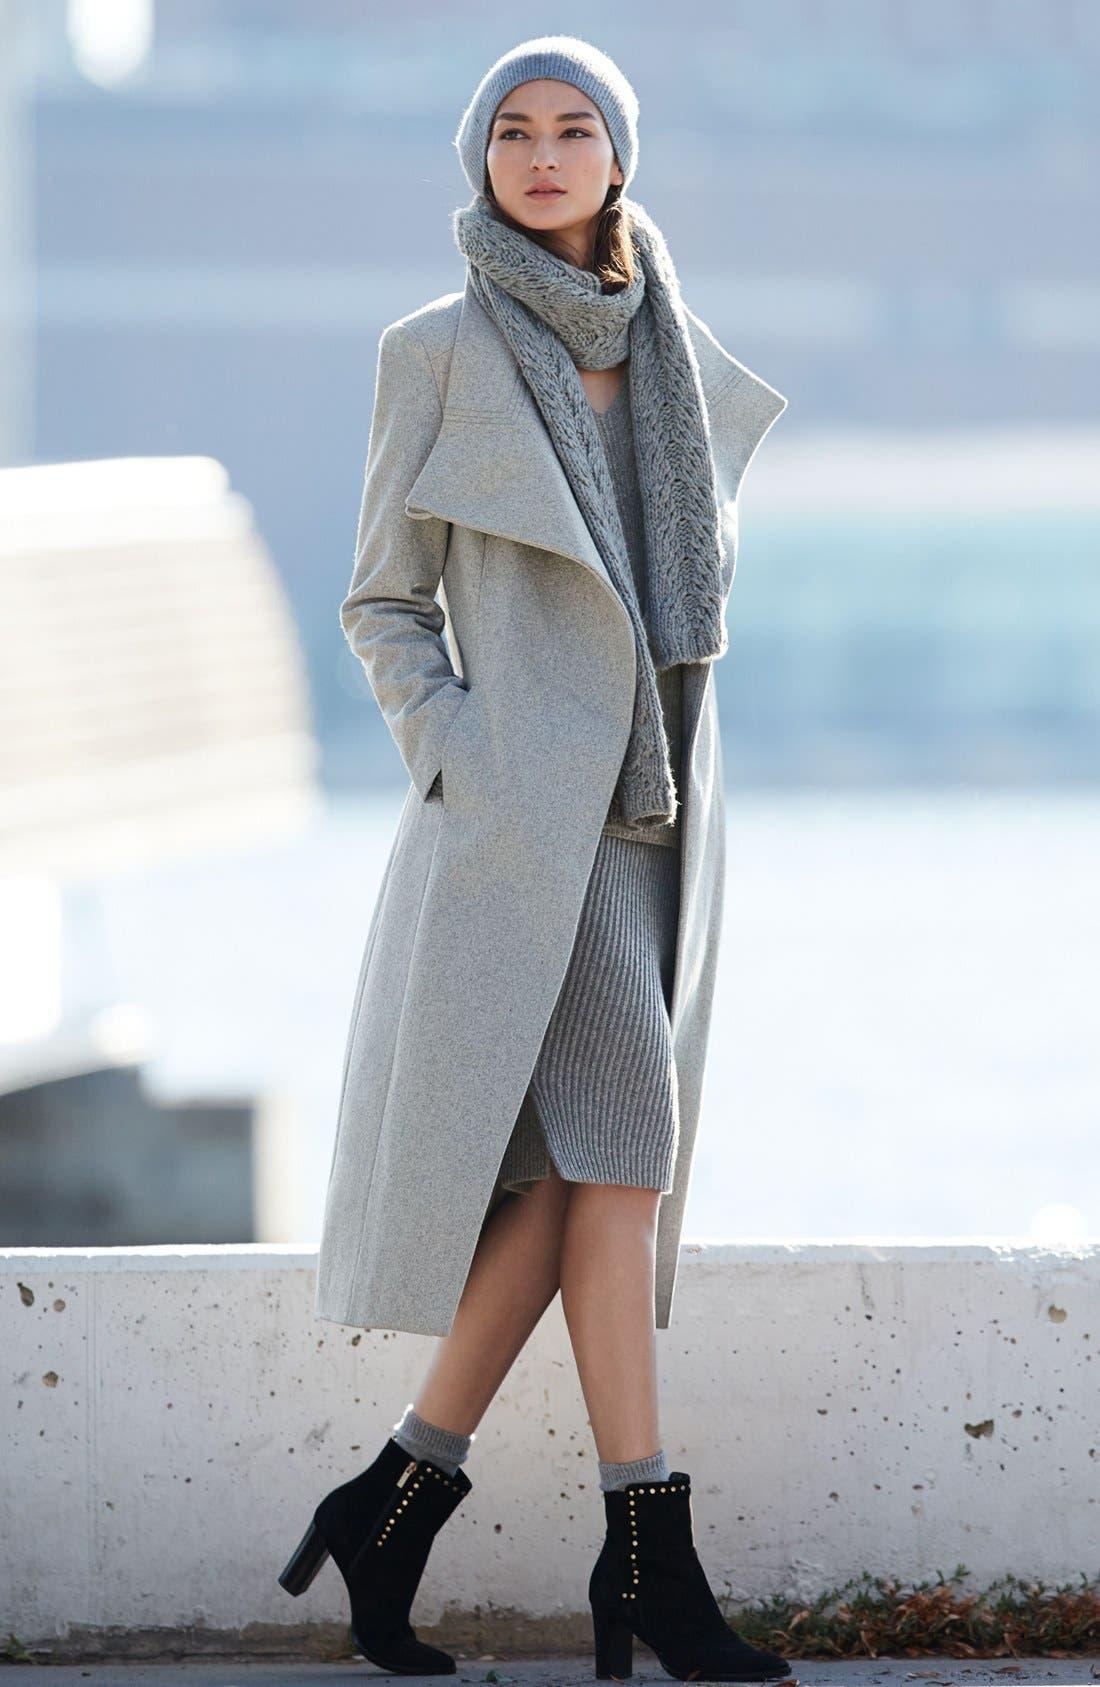 Kenneth Cole New York Maxi Coat & Eliza J Dress Outfit with Accessories